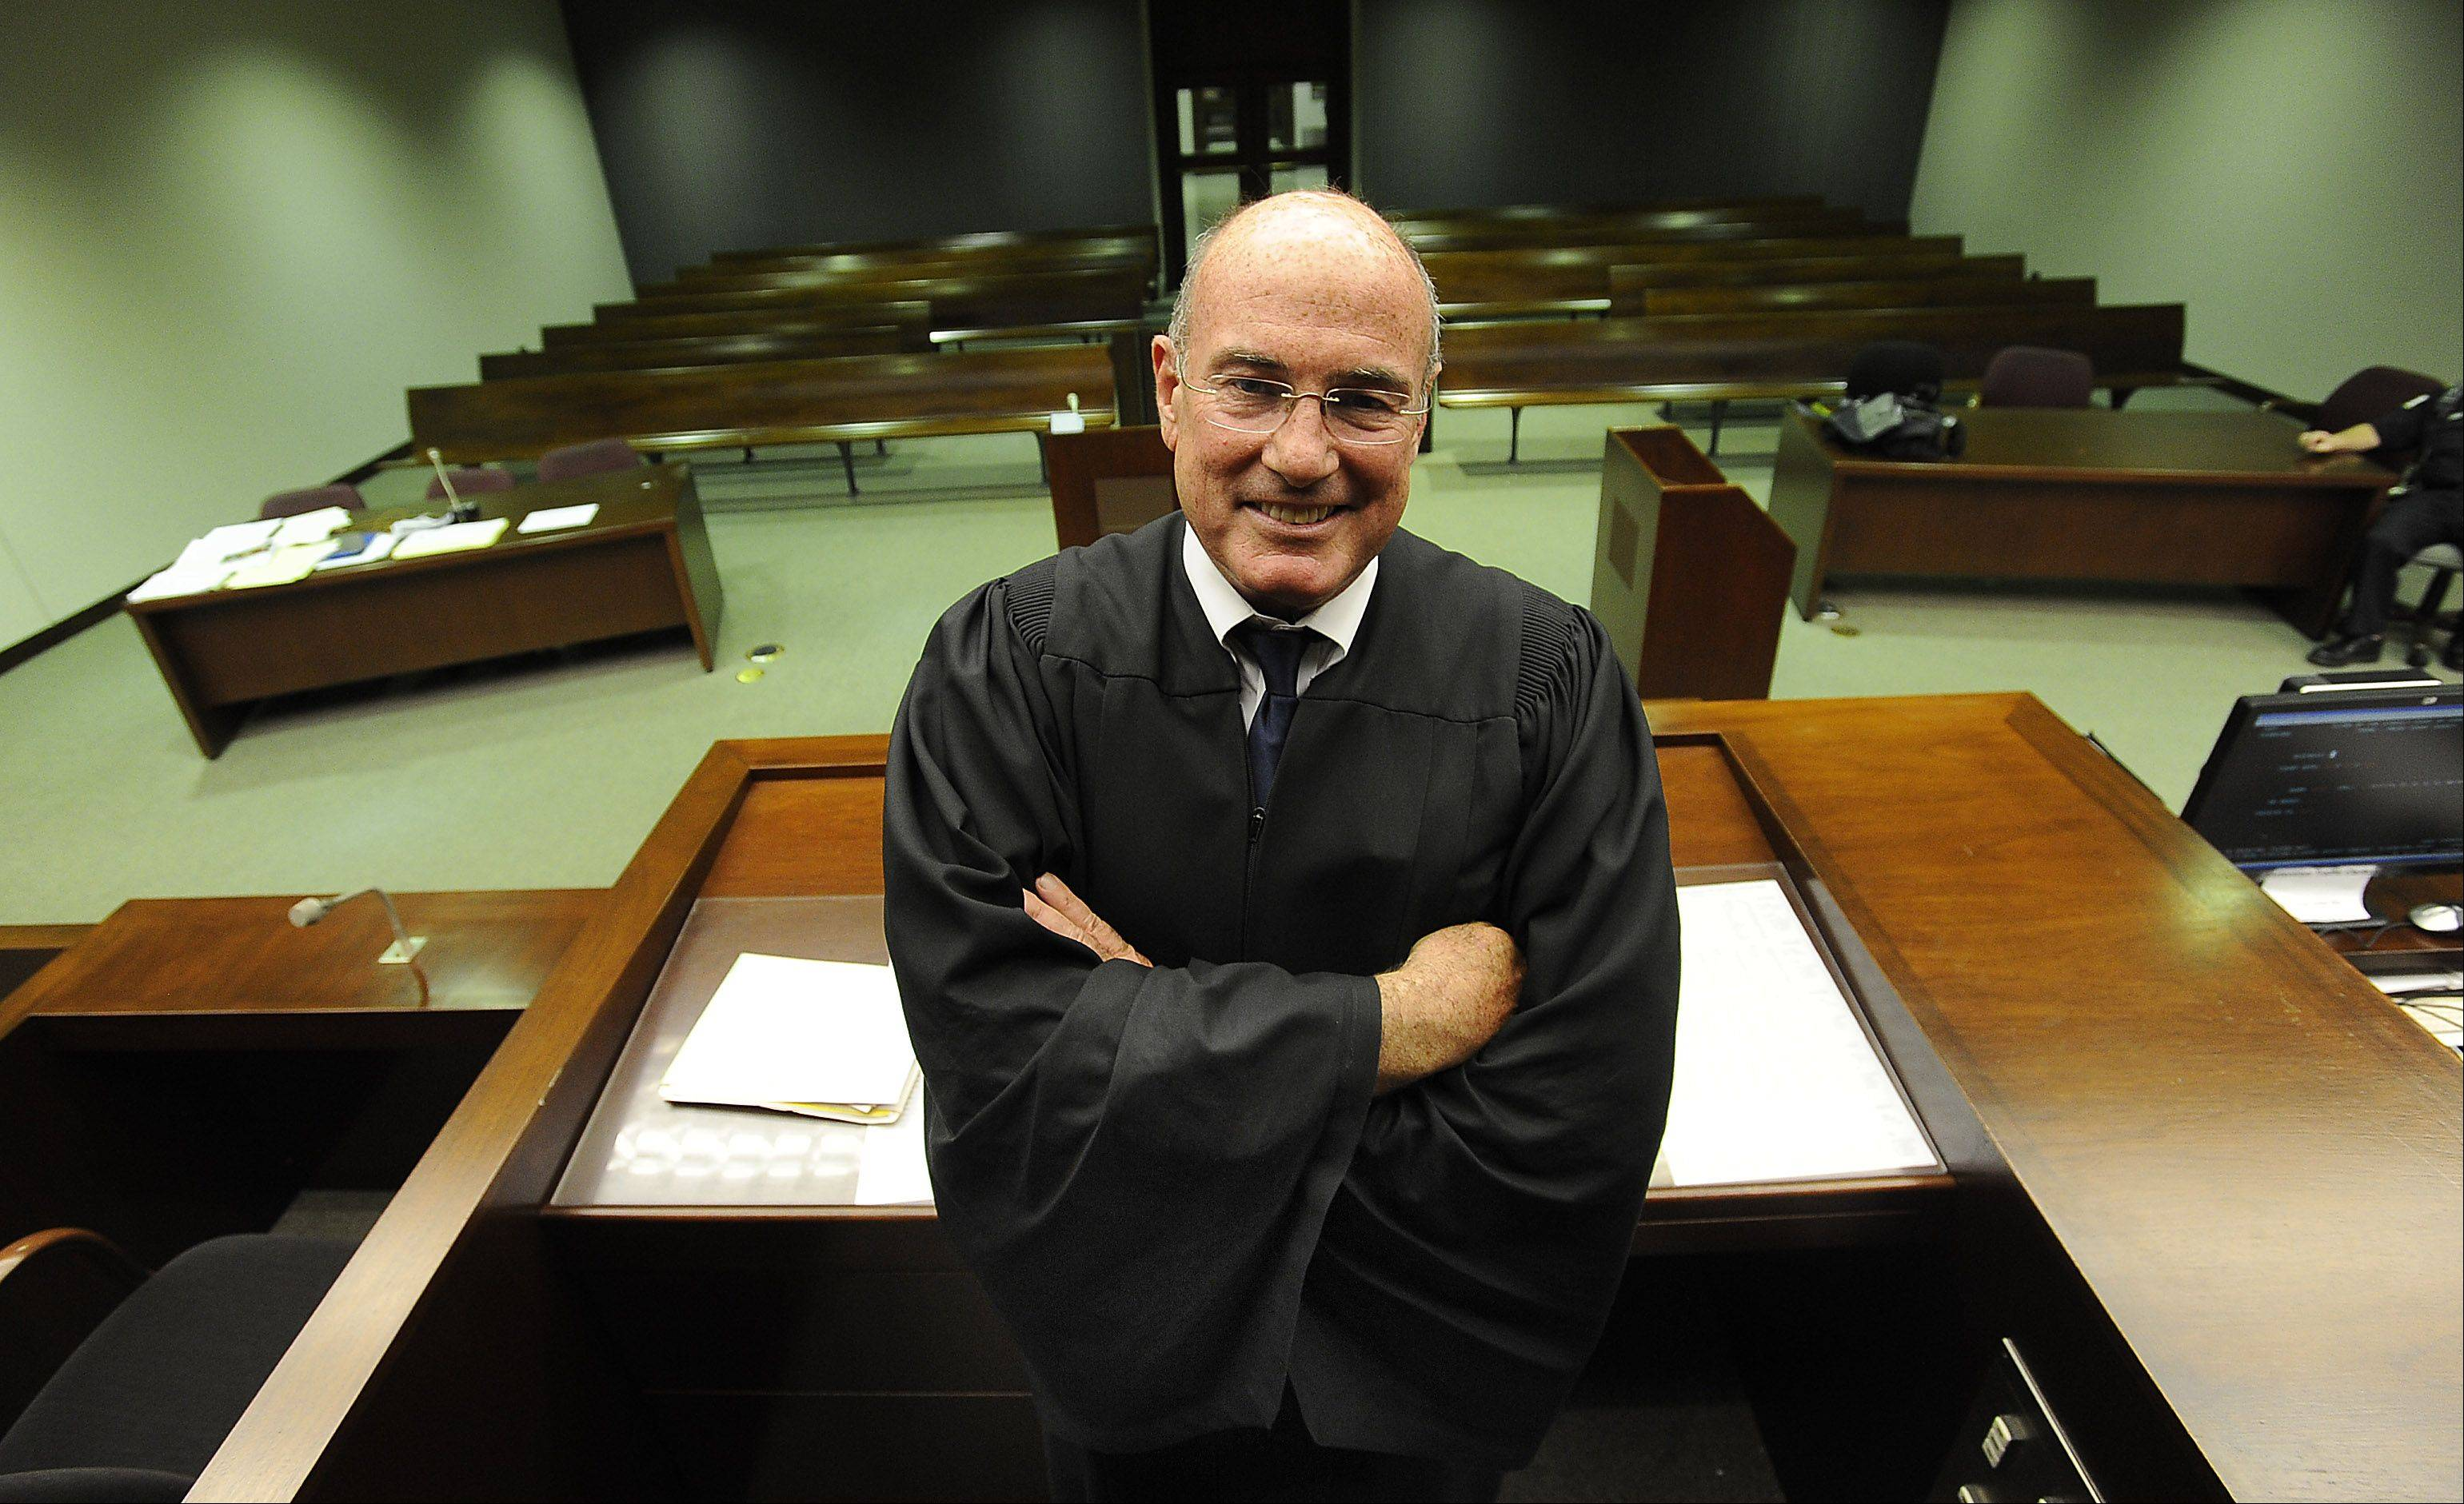 Associate Cook County Judge James P. Etchingham retired Monday after nearly 18 years on the bench, the last 12 of them at Rolling Meadows 3rd Municipal District courthouse.